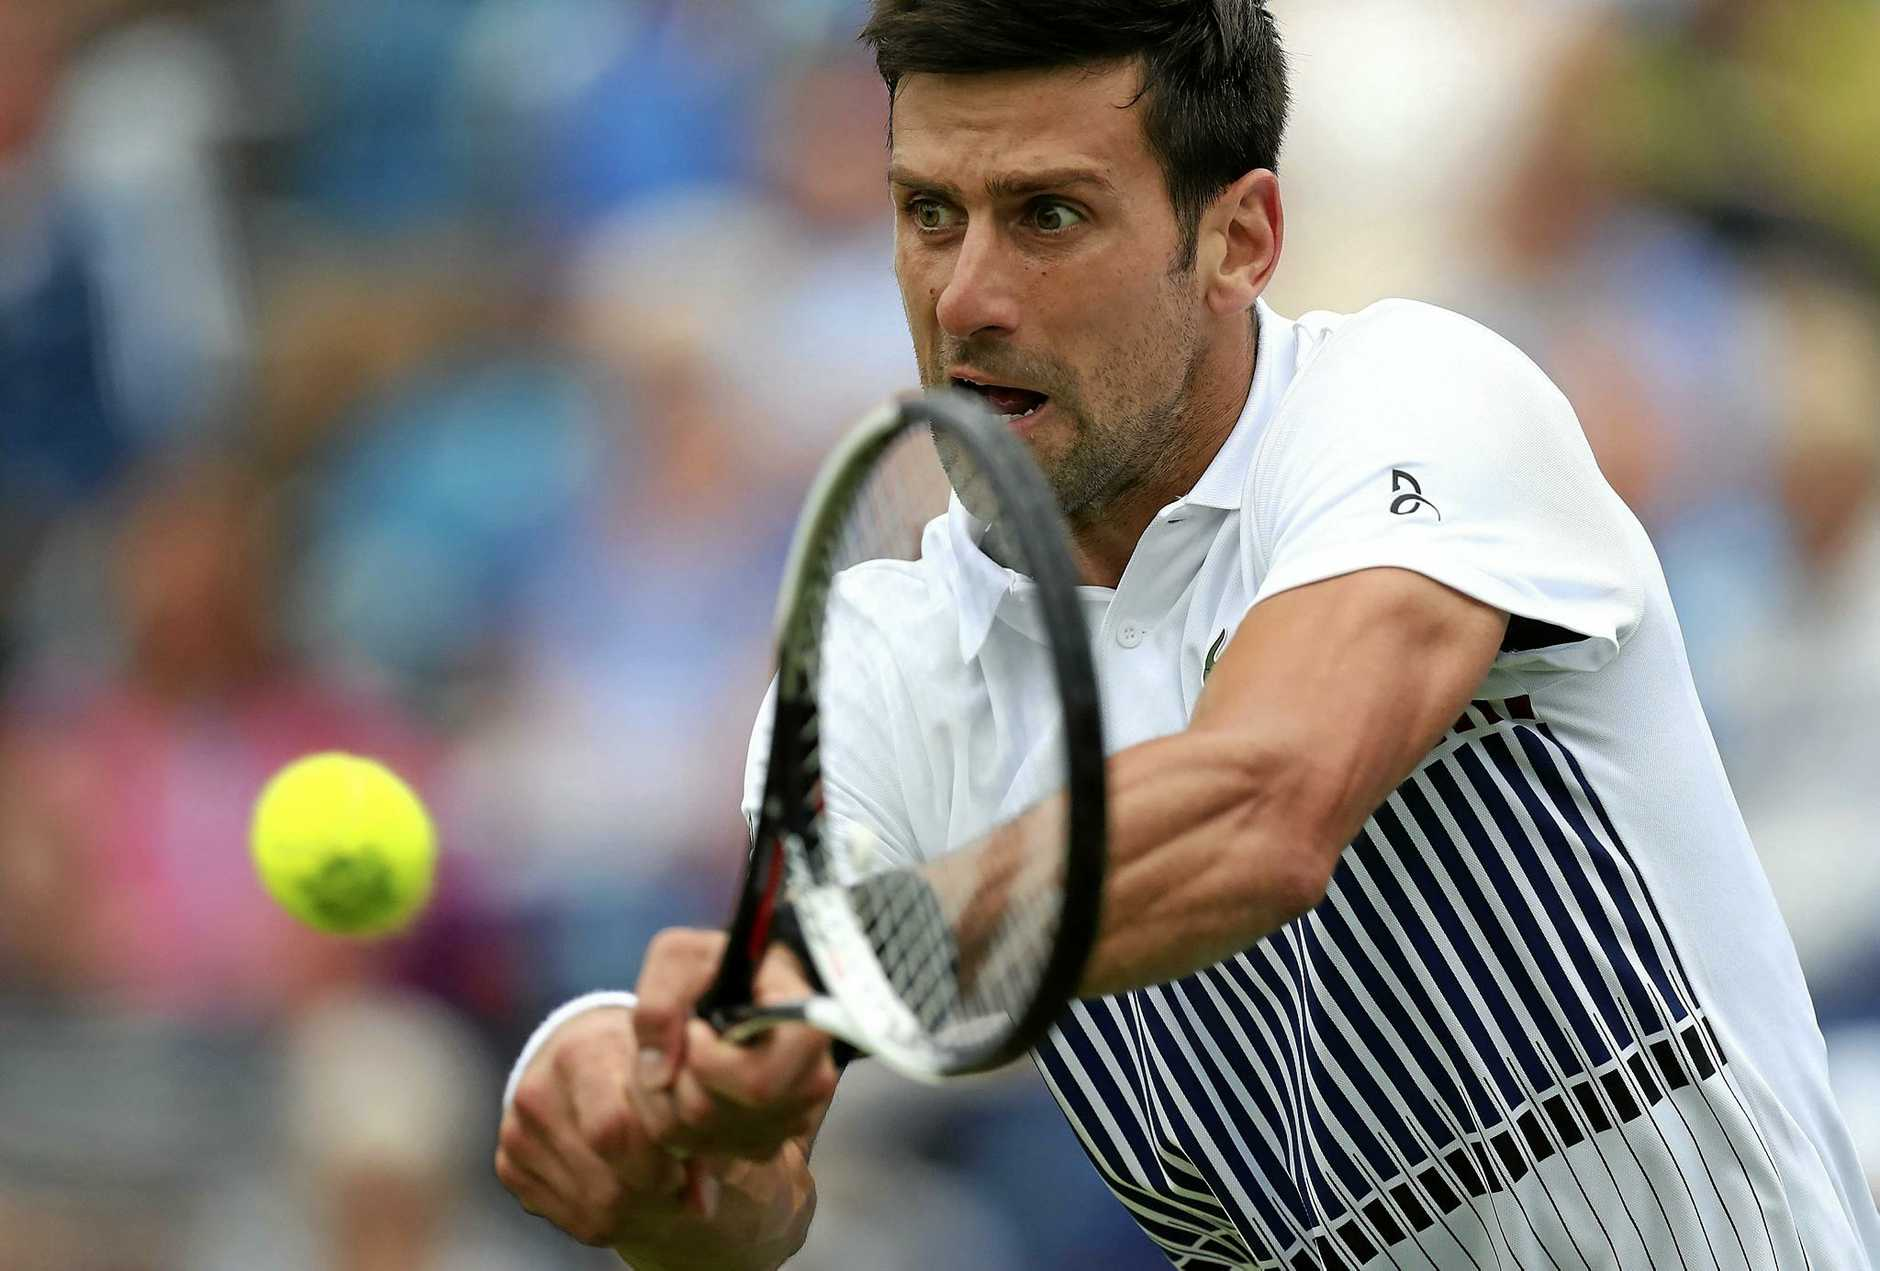 Novak Djokovic has benefitted from Wimbledon's ranking system with the world No 4 moving up two spots to the No 2 seed position.